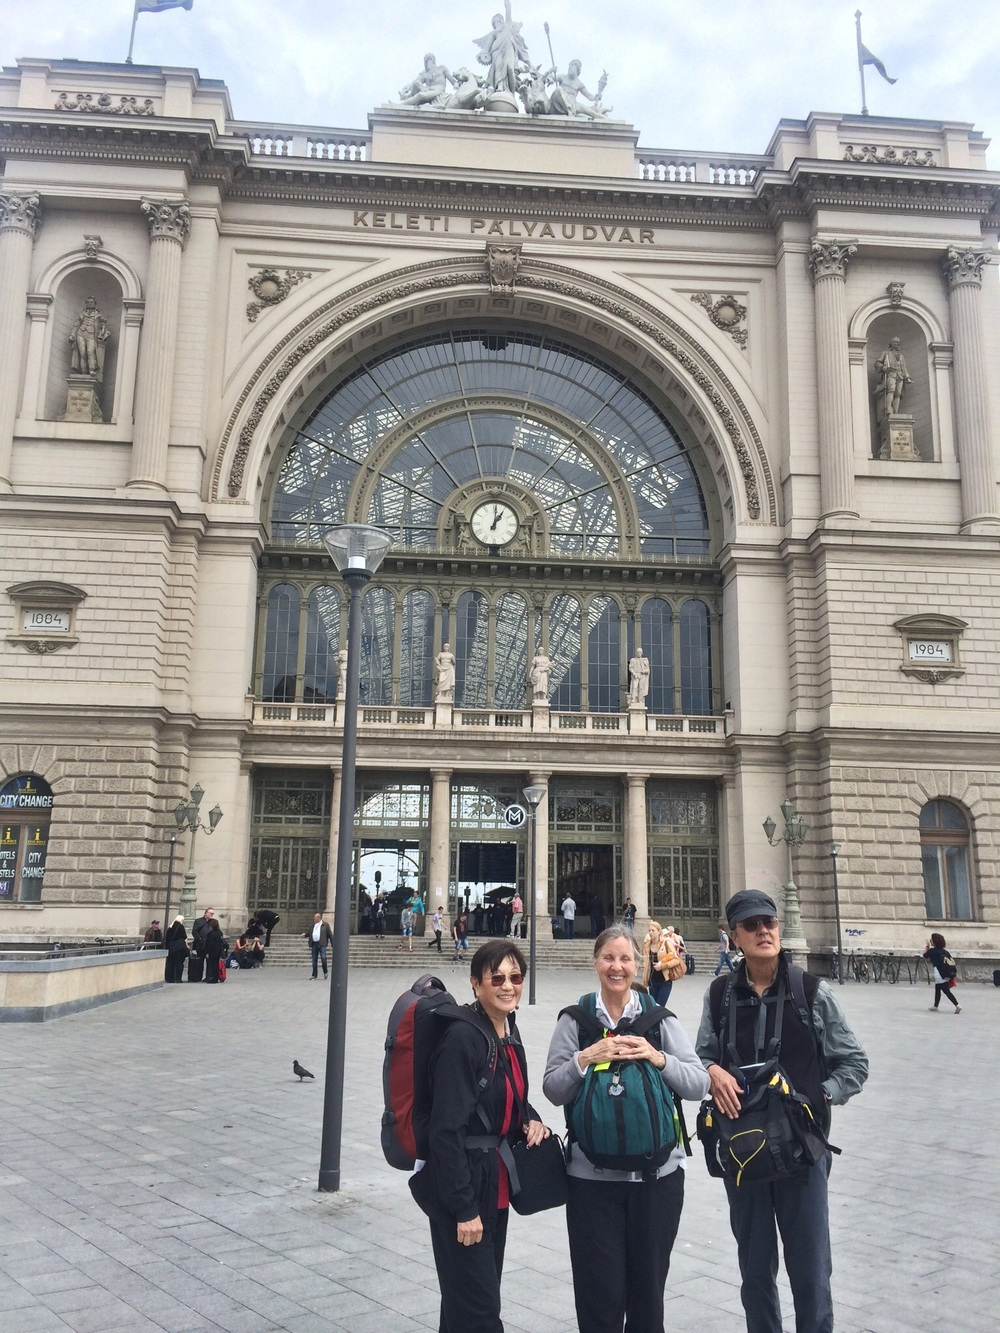 Arrival in 19th century Keleti Station, Budapest